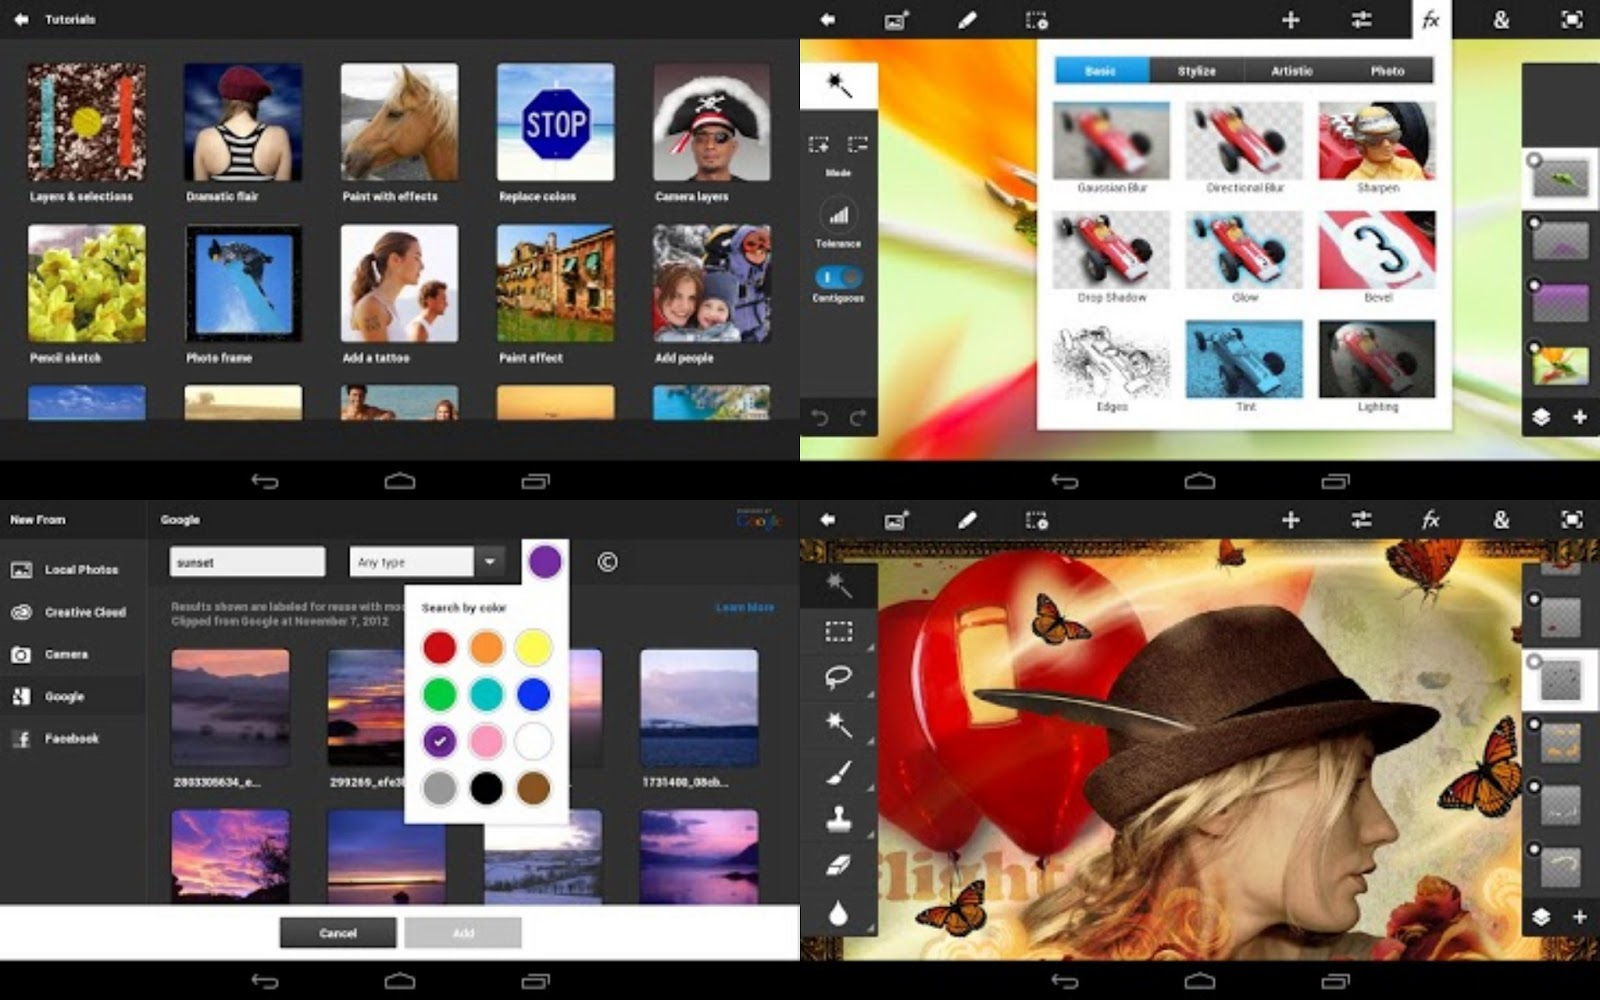 Adobe Photoshop CS5 For PC Free Download - SoftCroco